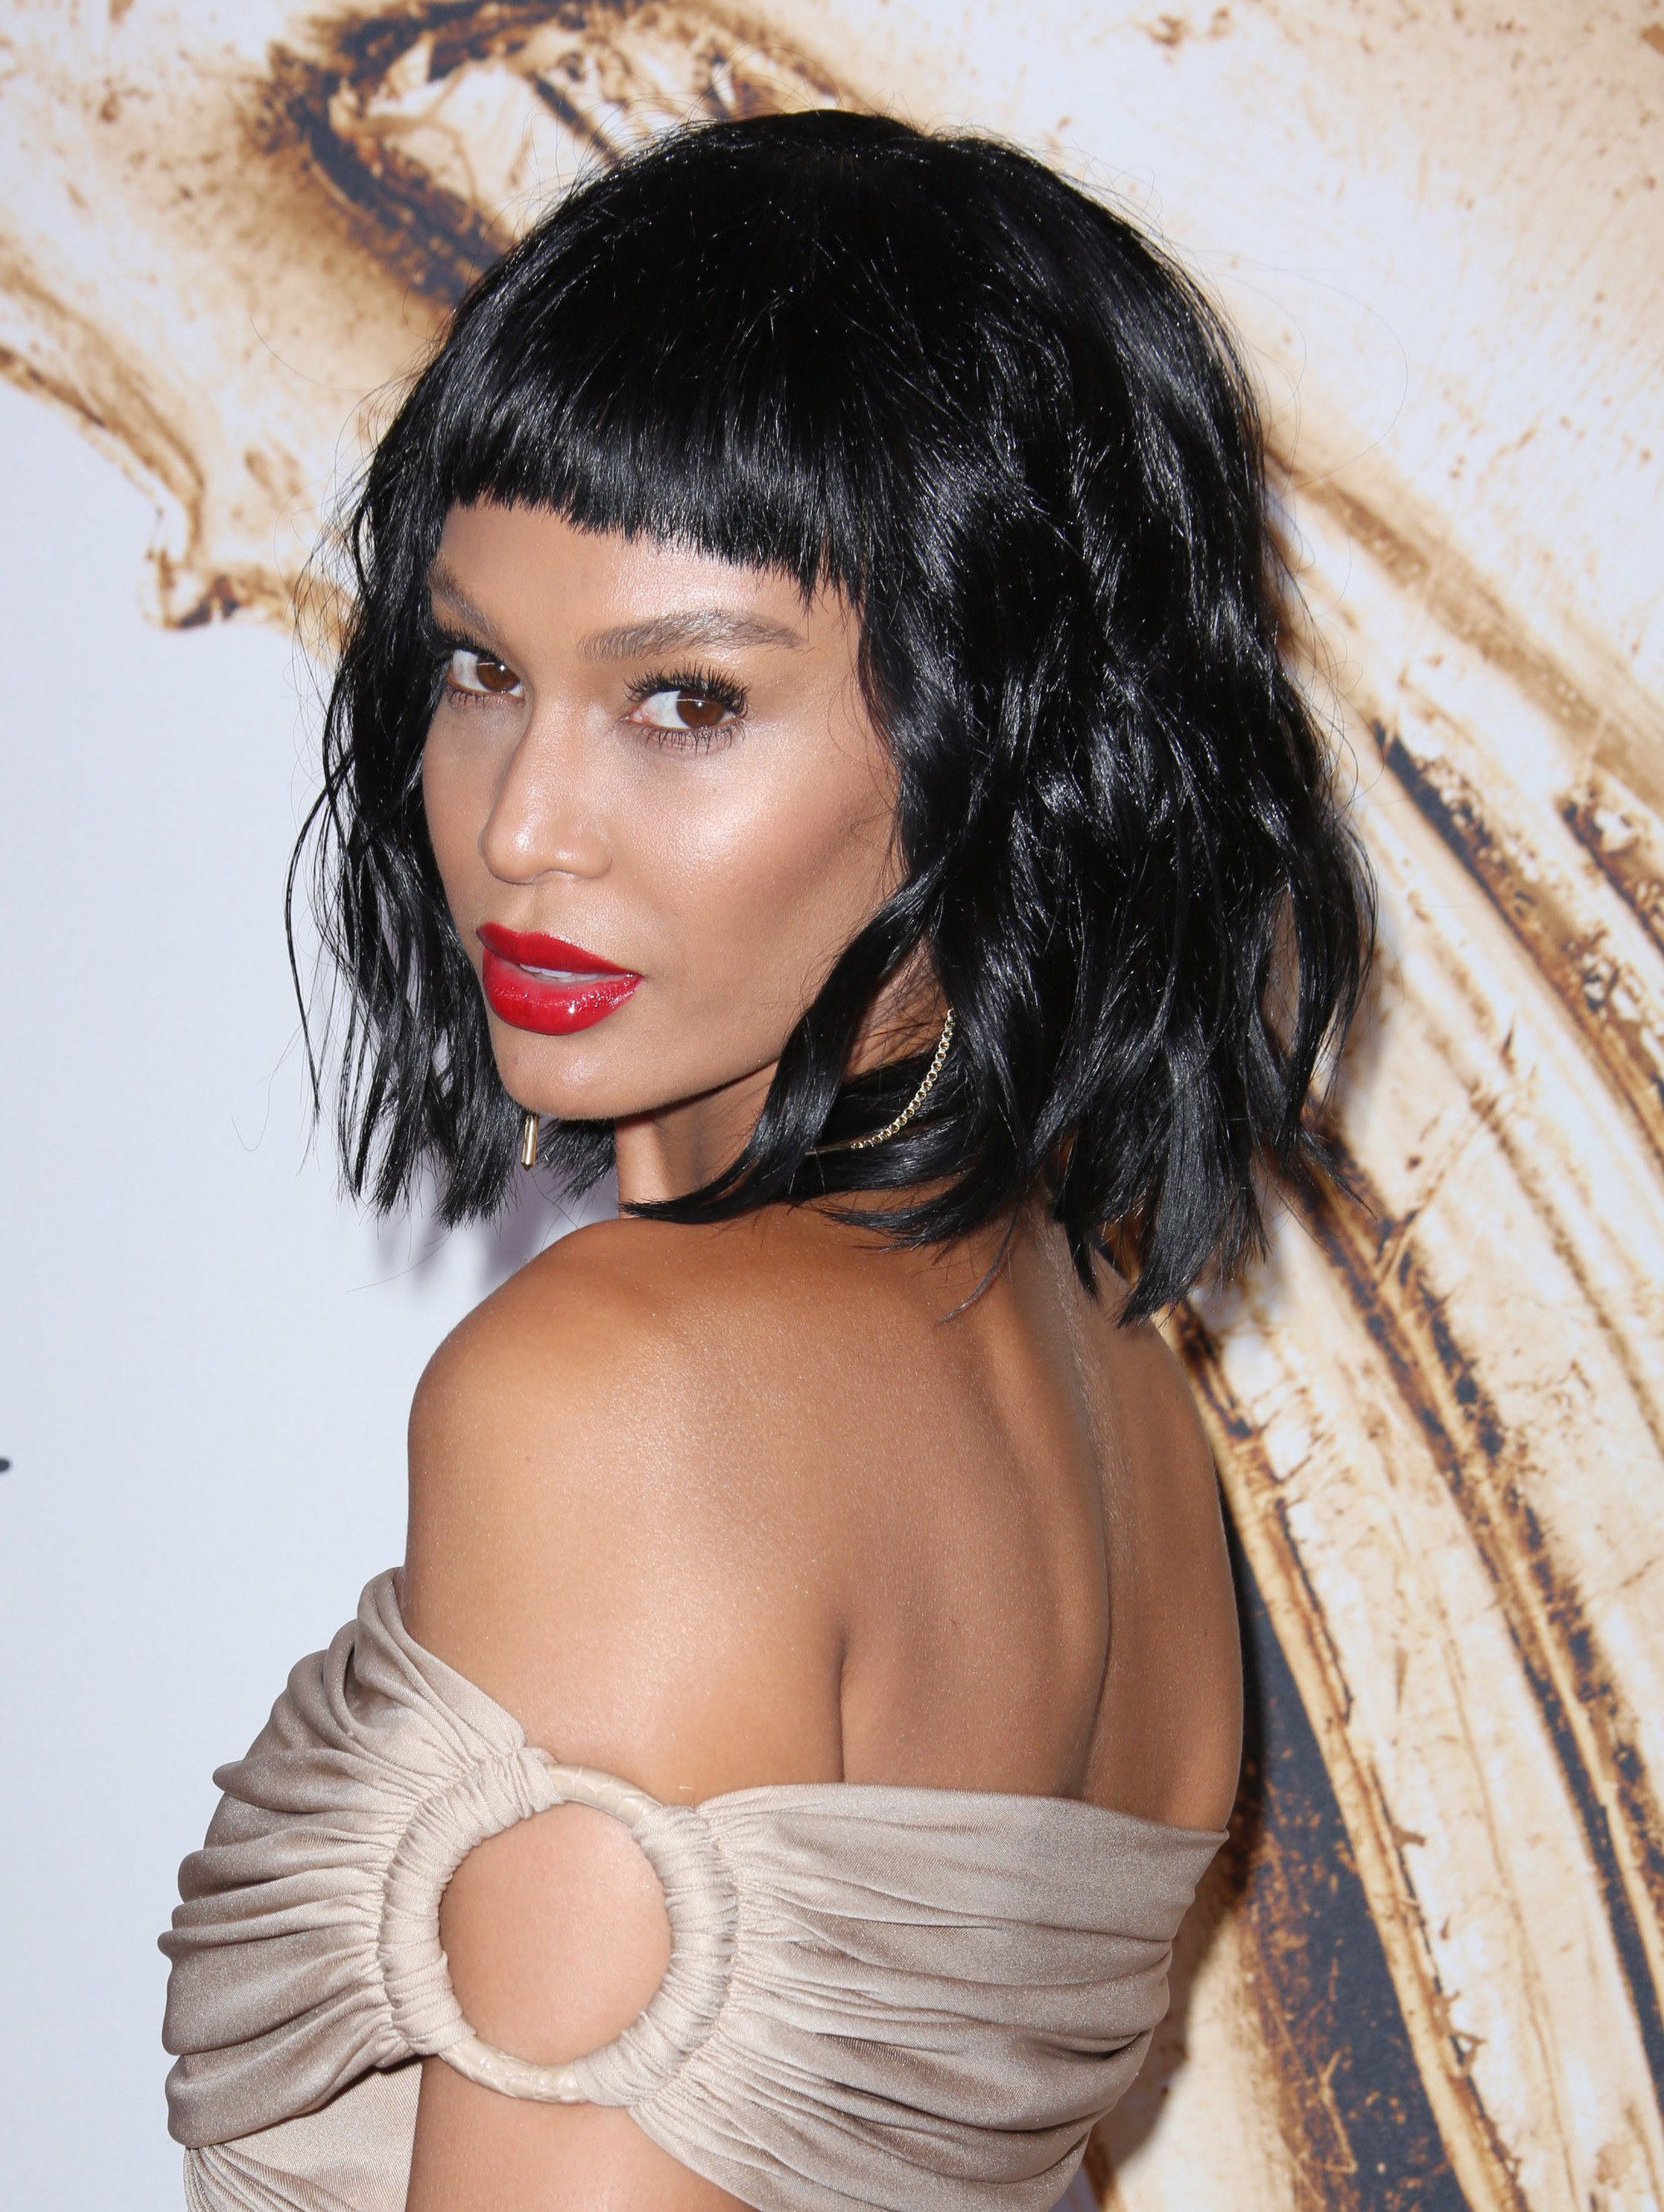 Rihanna Co Have Slayed These Black Hairstyles With Bangs